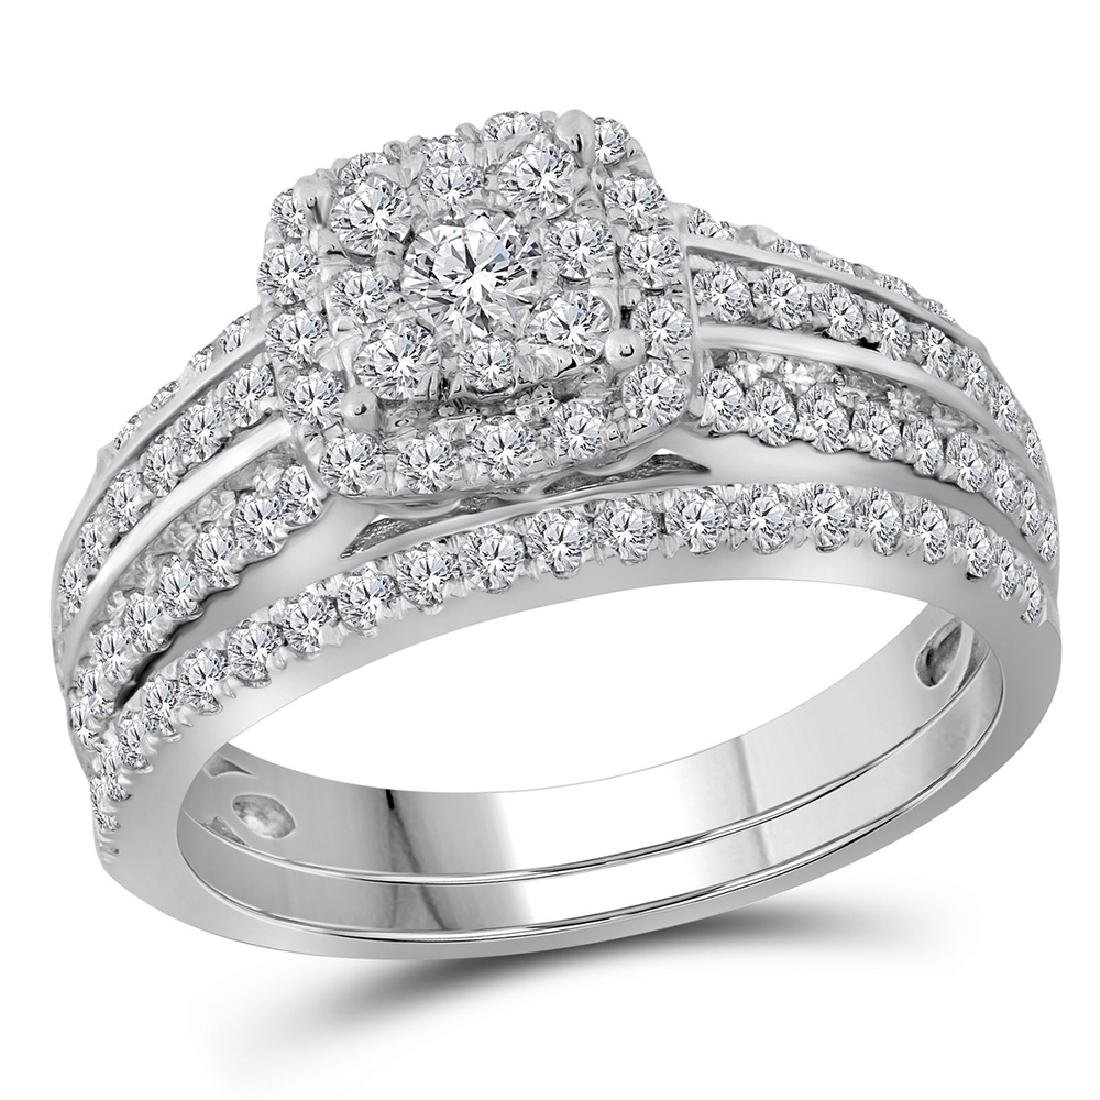 1 CTW Diamond Double Halo Bridal Engagement Ring 14KT